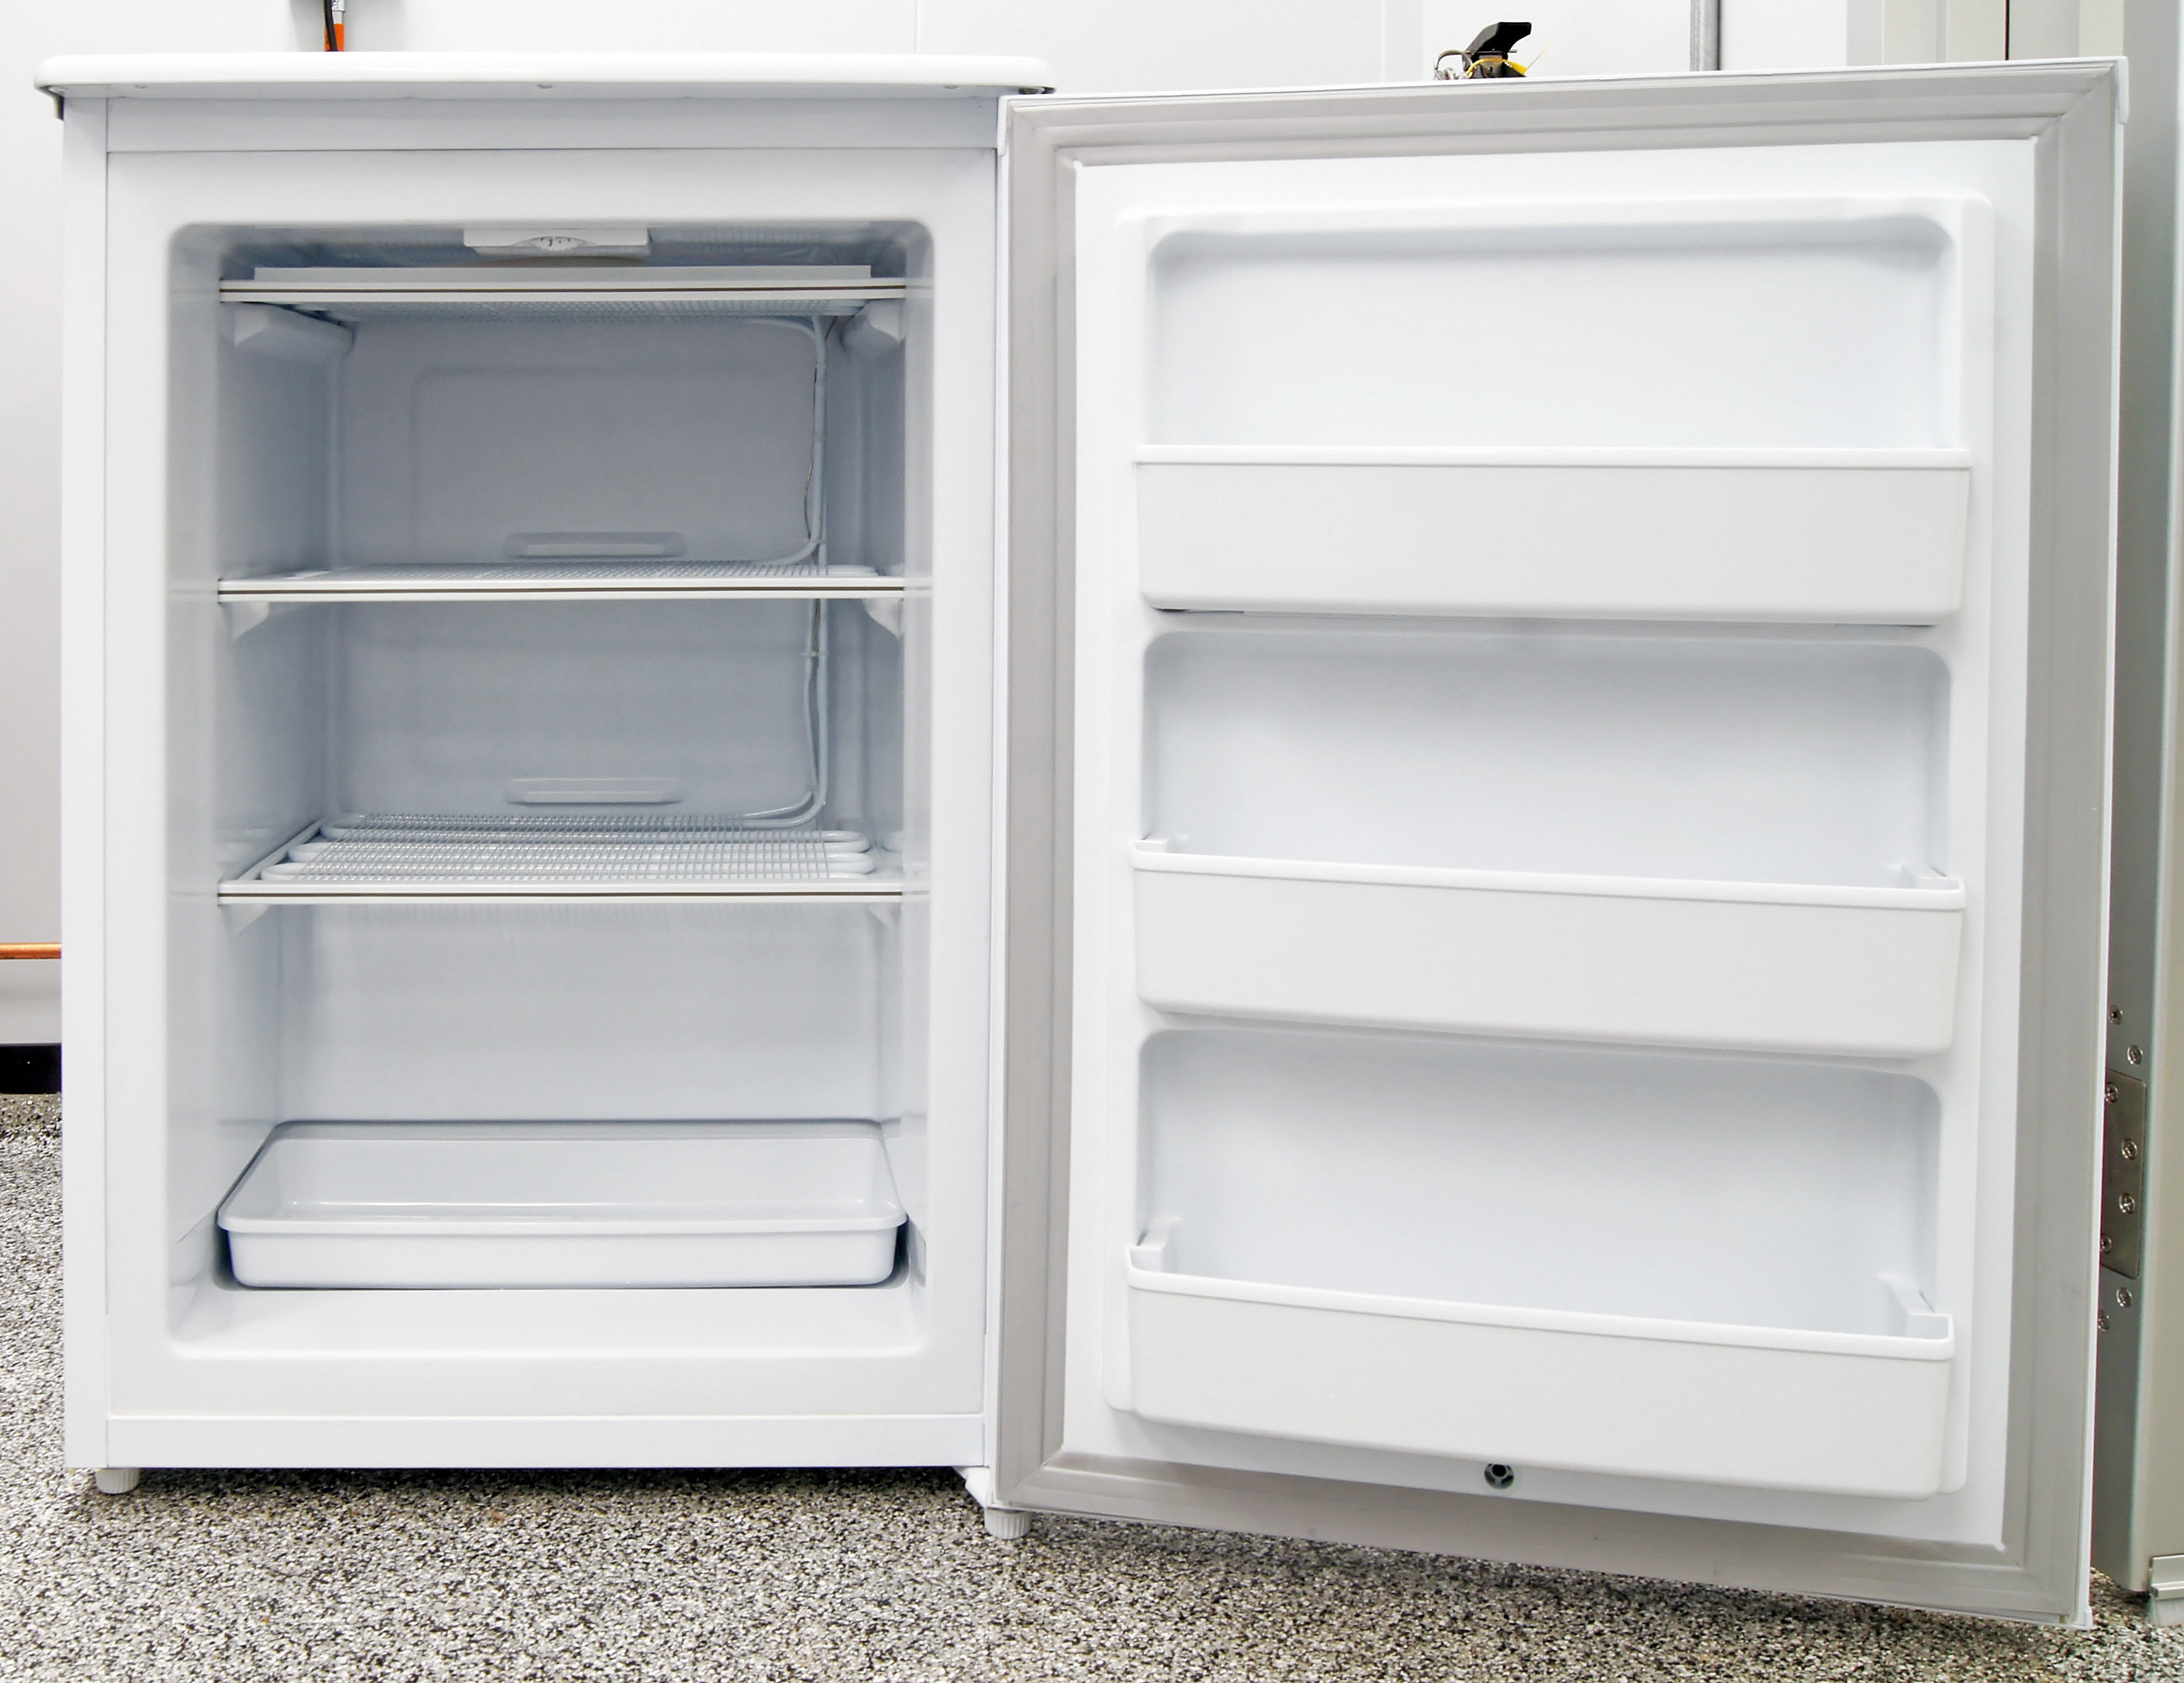 Six assorted storage areas are available inside the Danby DUF408WE, and none of them are adjustable.